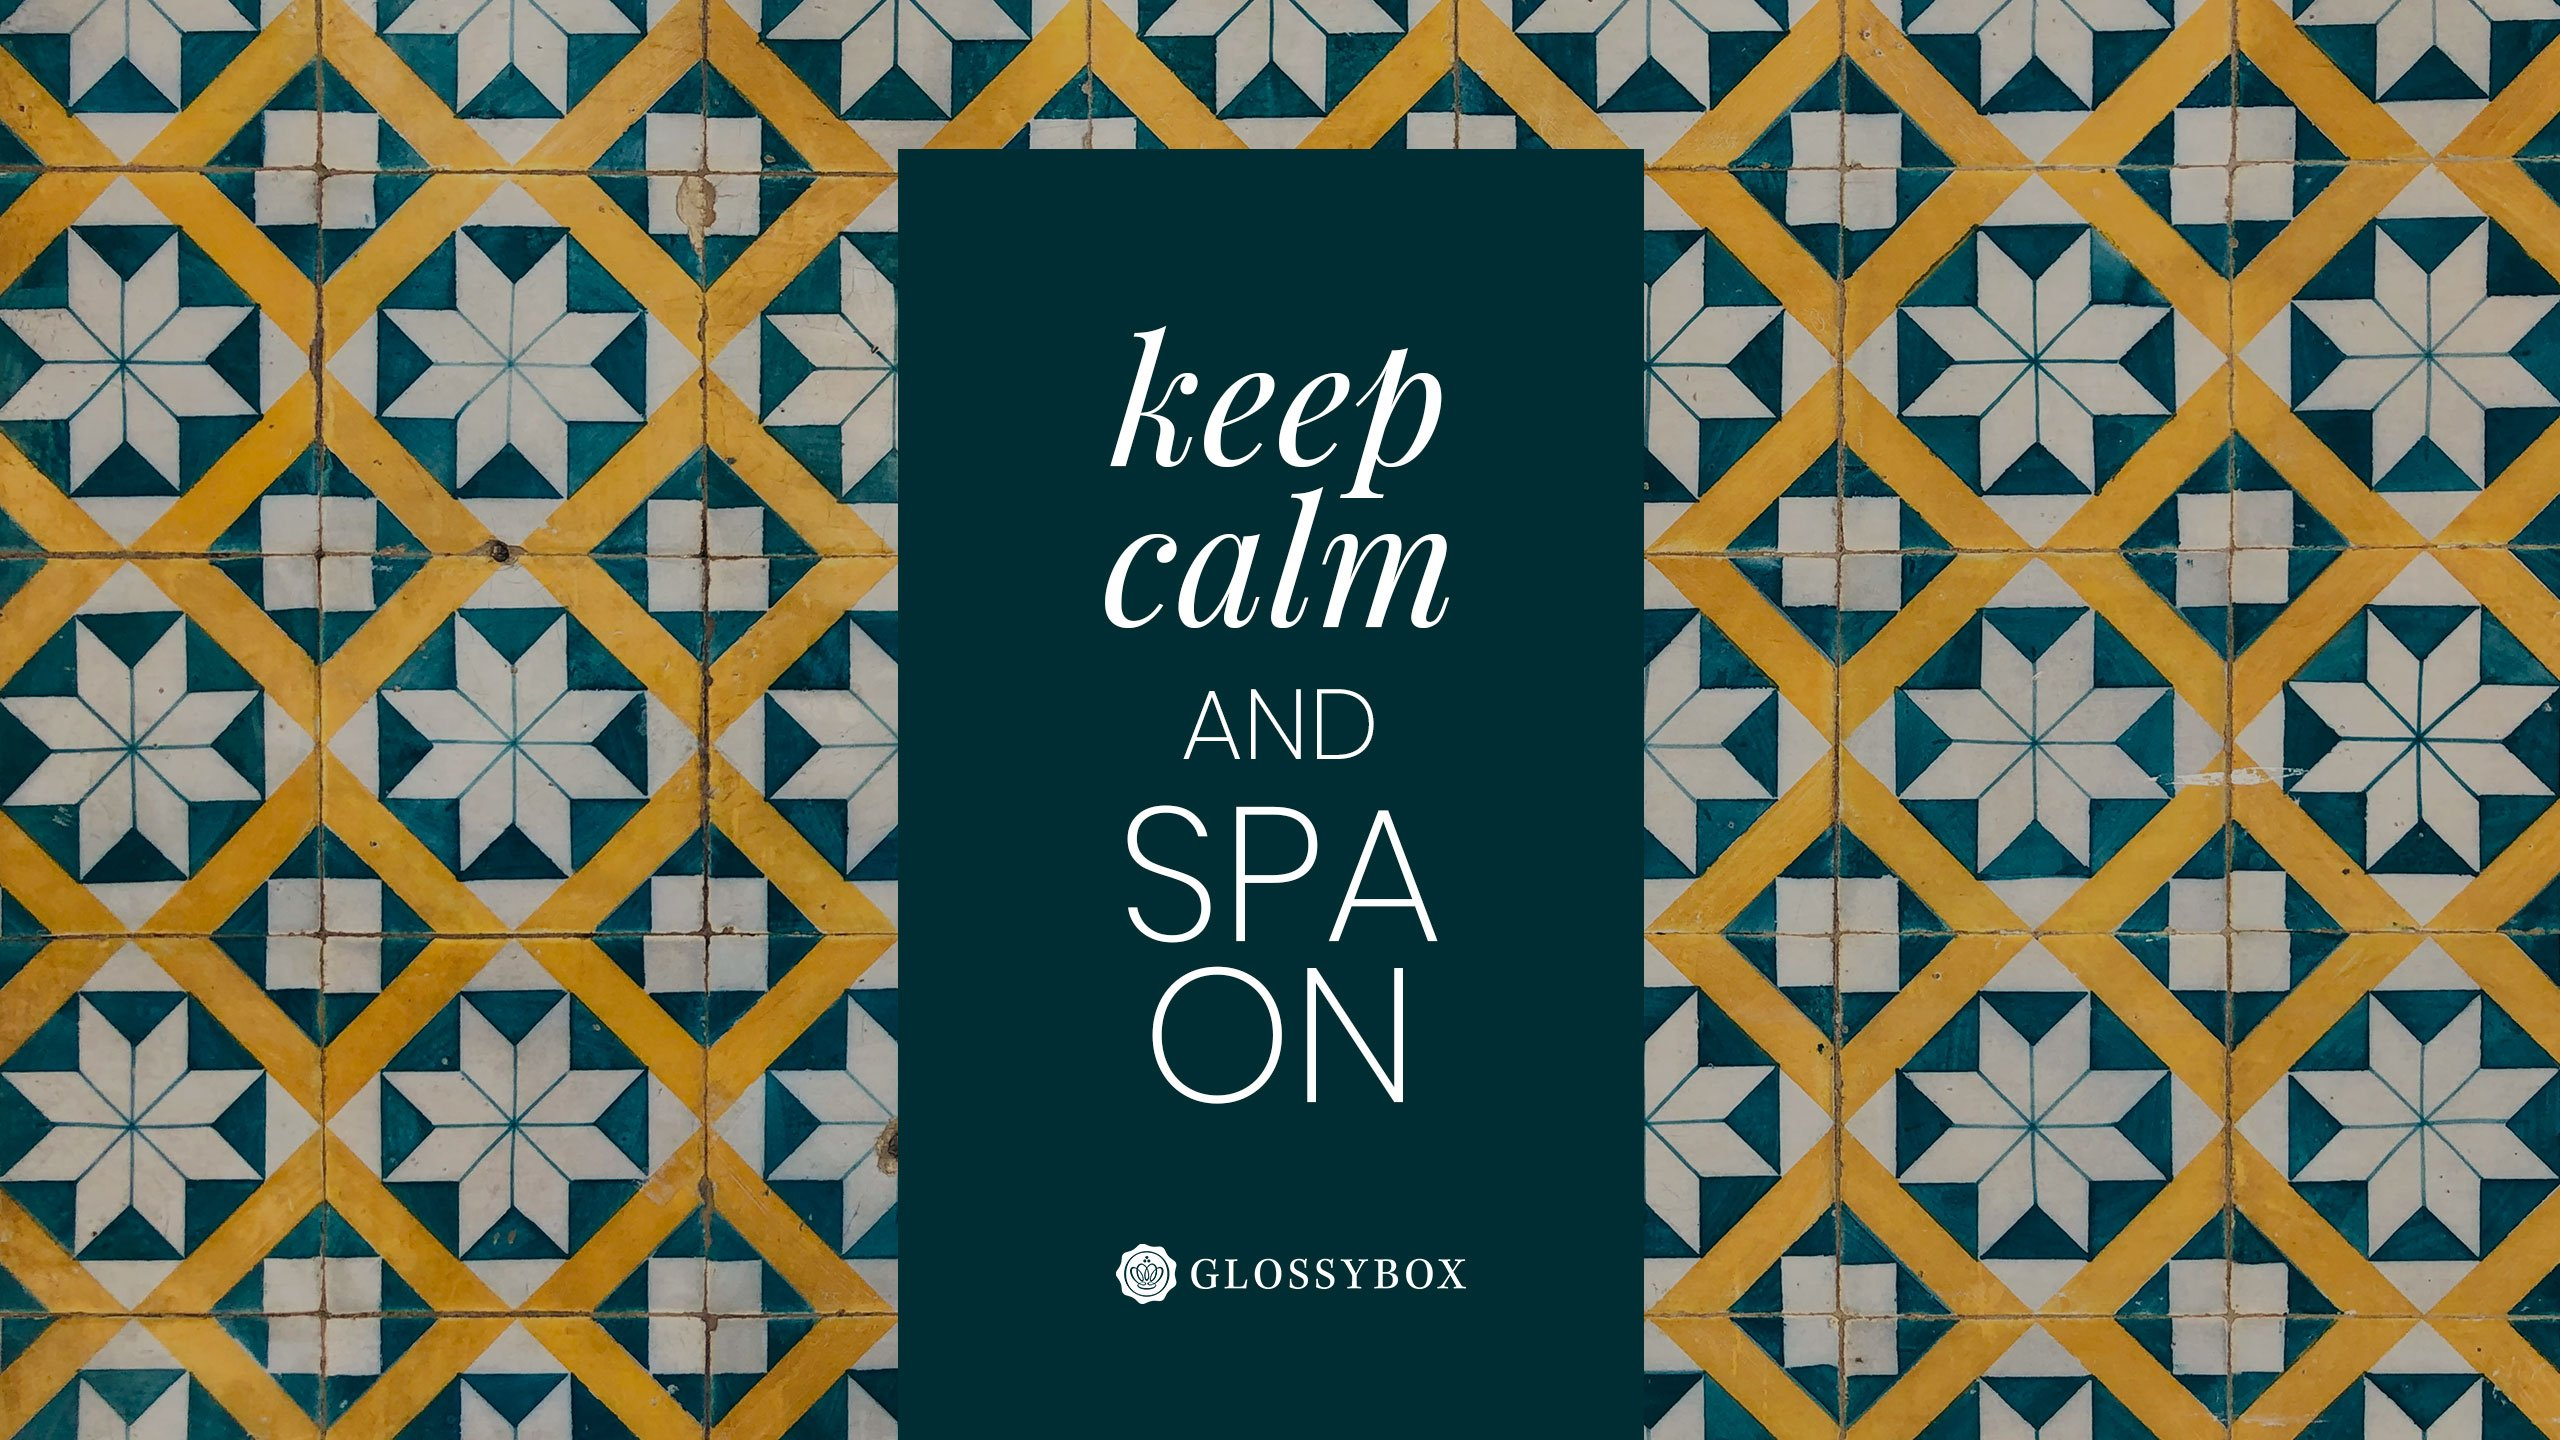 glossy-wallpaper-september-spa-edition-wallpaper